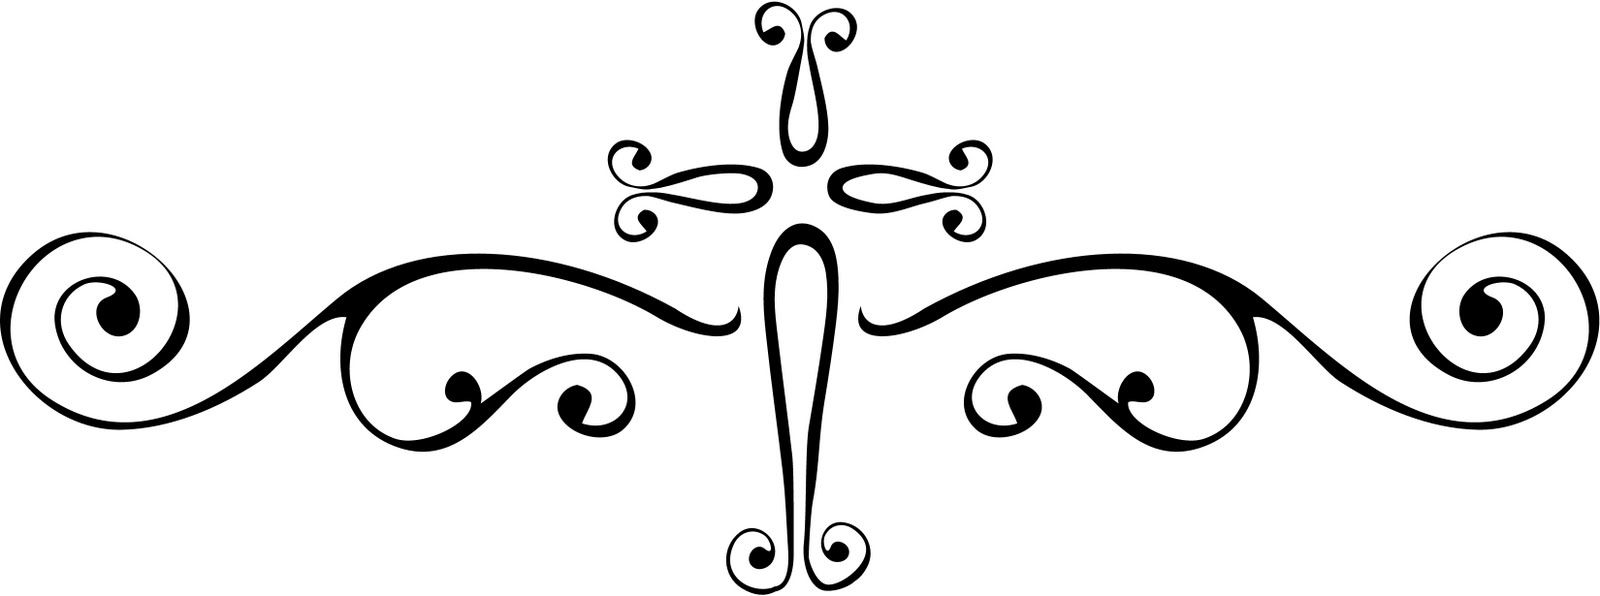 Cross kid designs pinterest. Filigree clipart